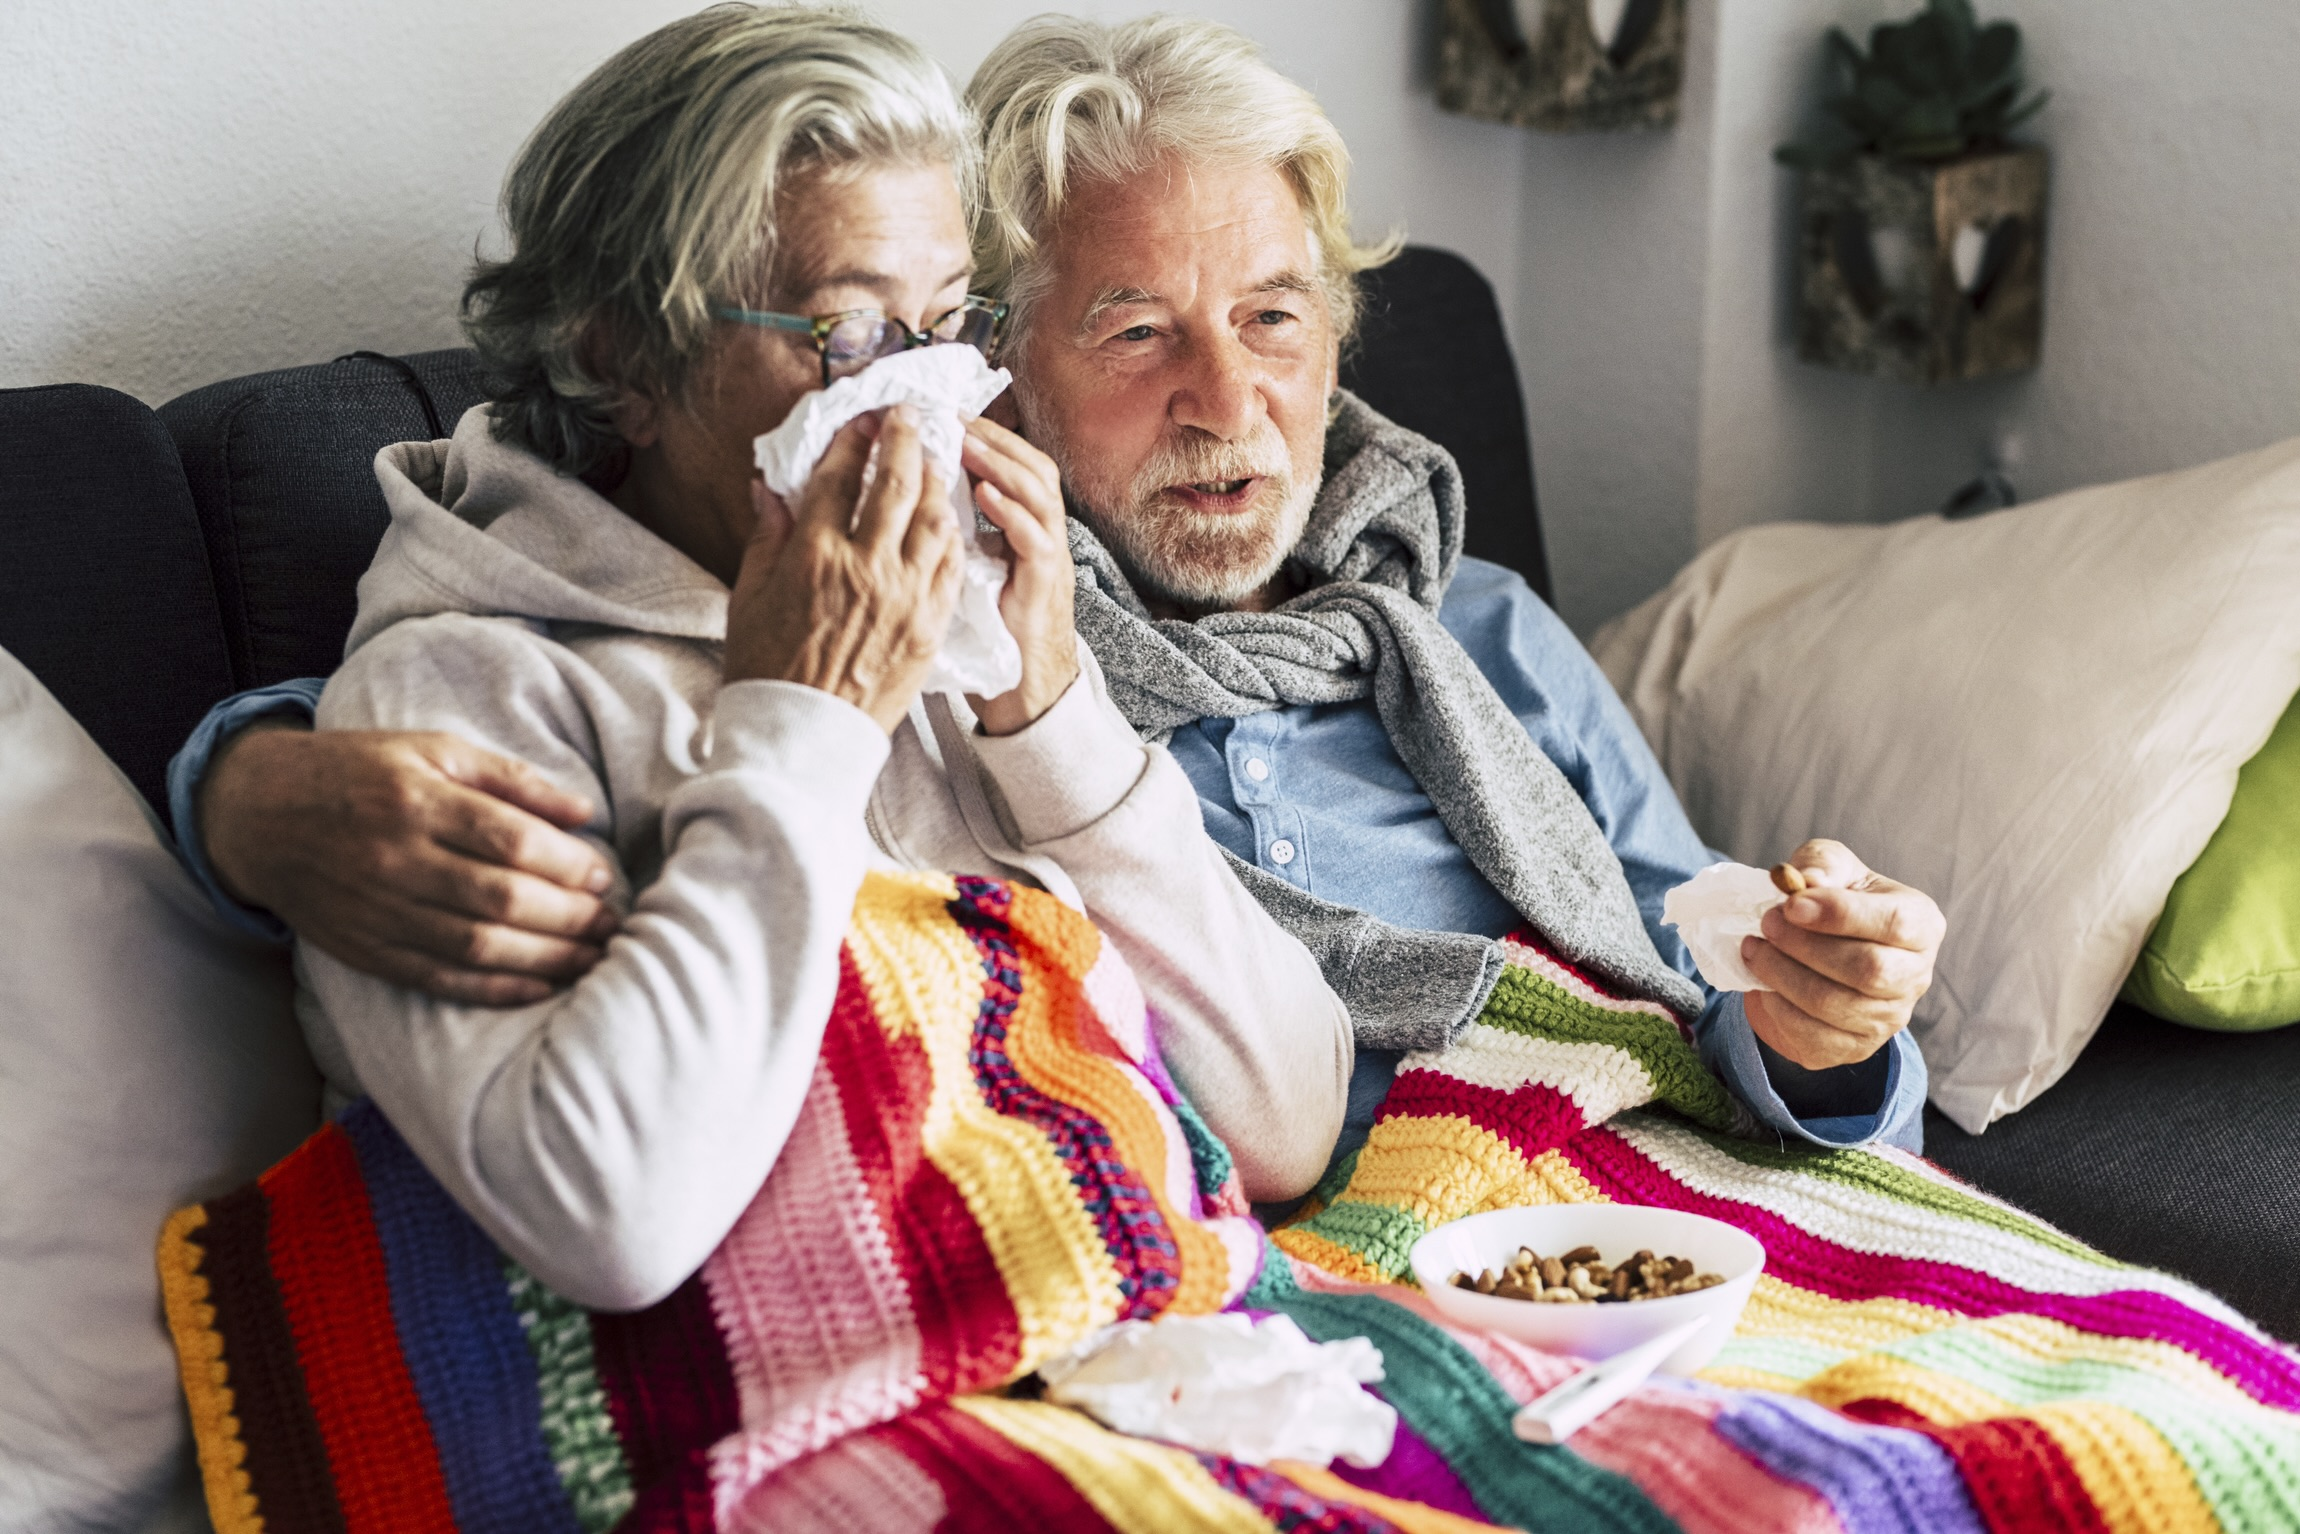 5 Most Common Infections in Seniors